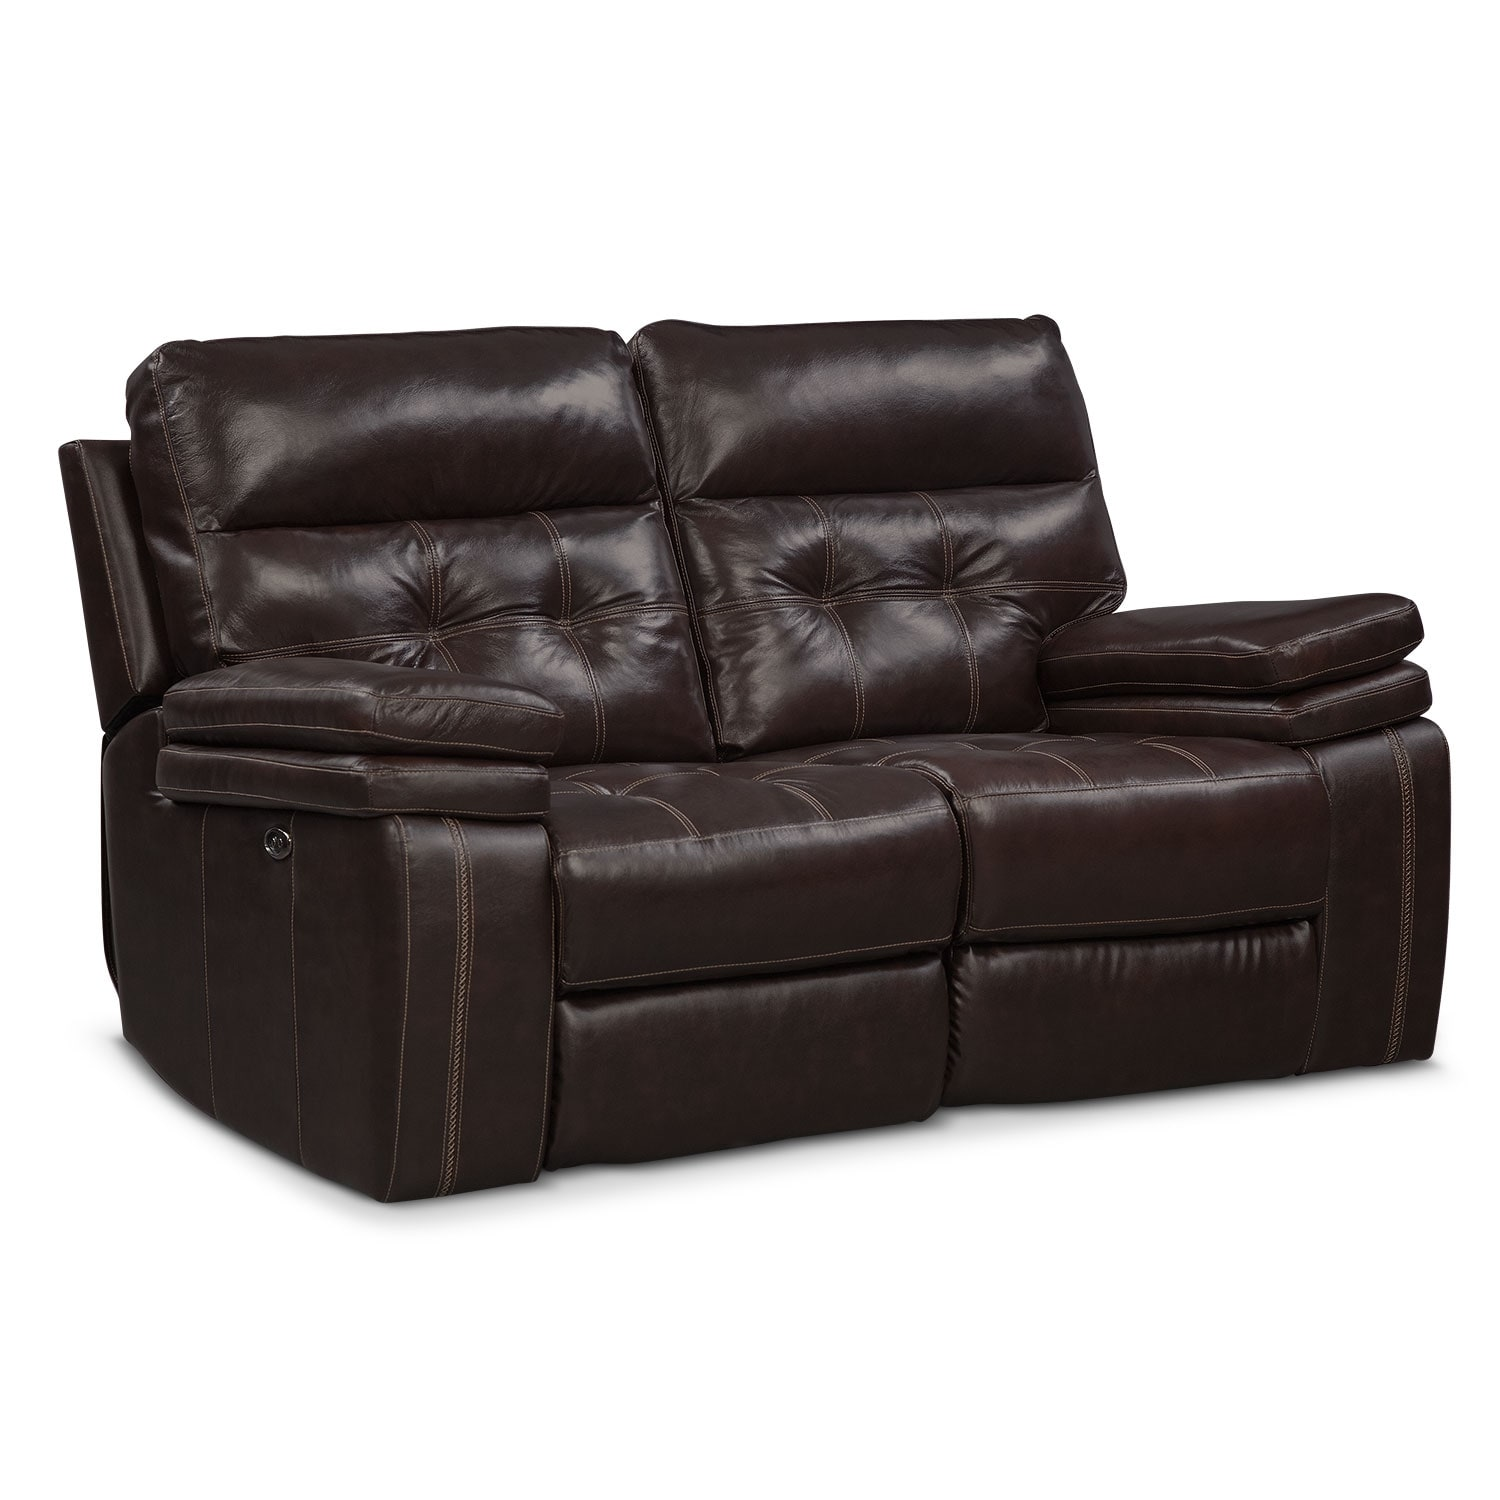 Brisco Power Reclining Sofa, Reclining Loveseat And Glider